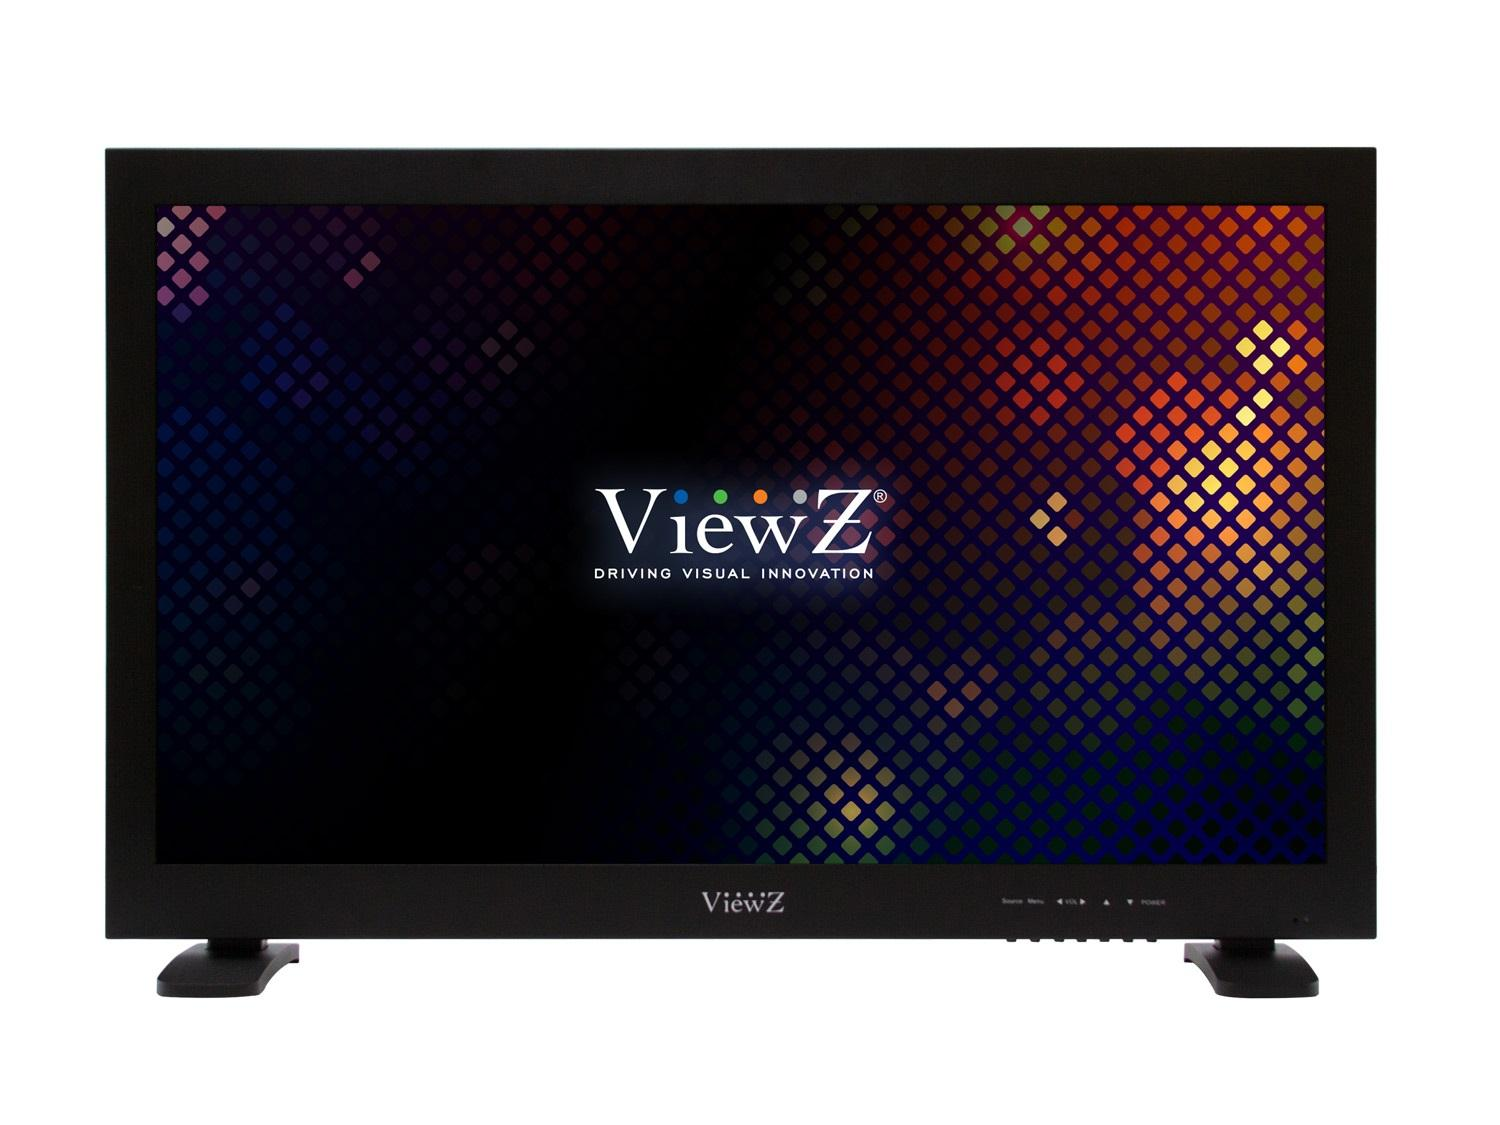 ViewZ VZ-24HX Premium Metal Bezel Hybrid Full HD LED CCTV Monitor for Professional Security